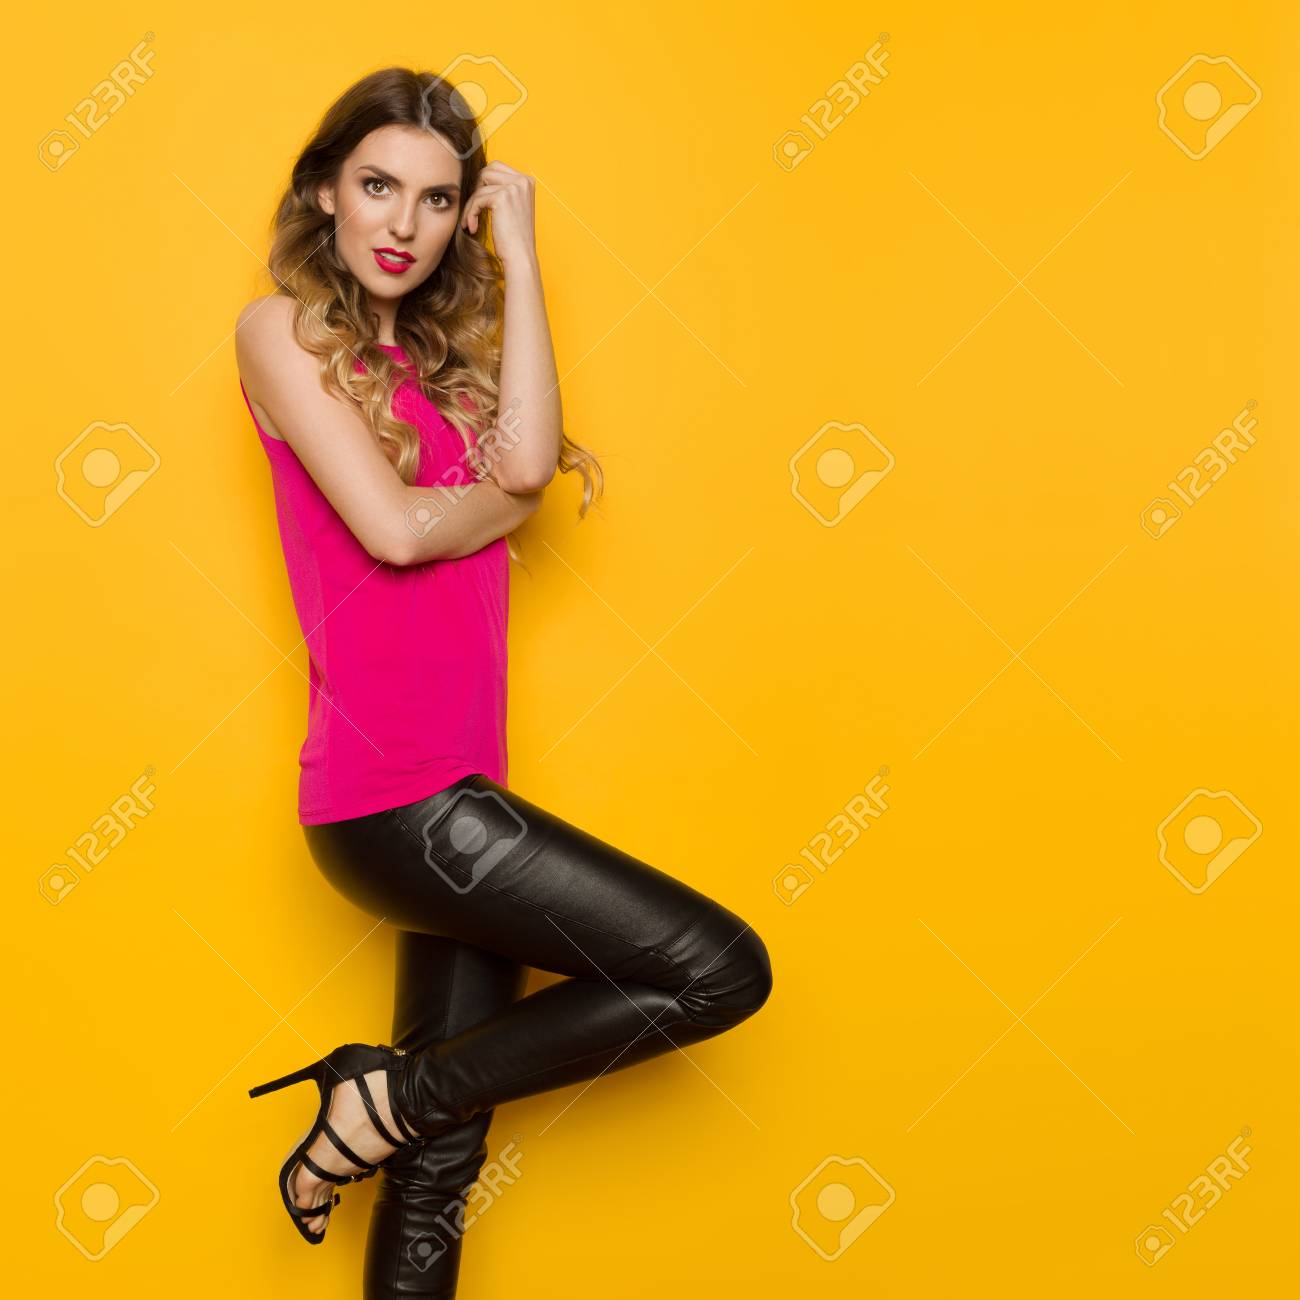 2b51936fe6f Beautiful young woman in pink top, black leather pants and high..